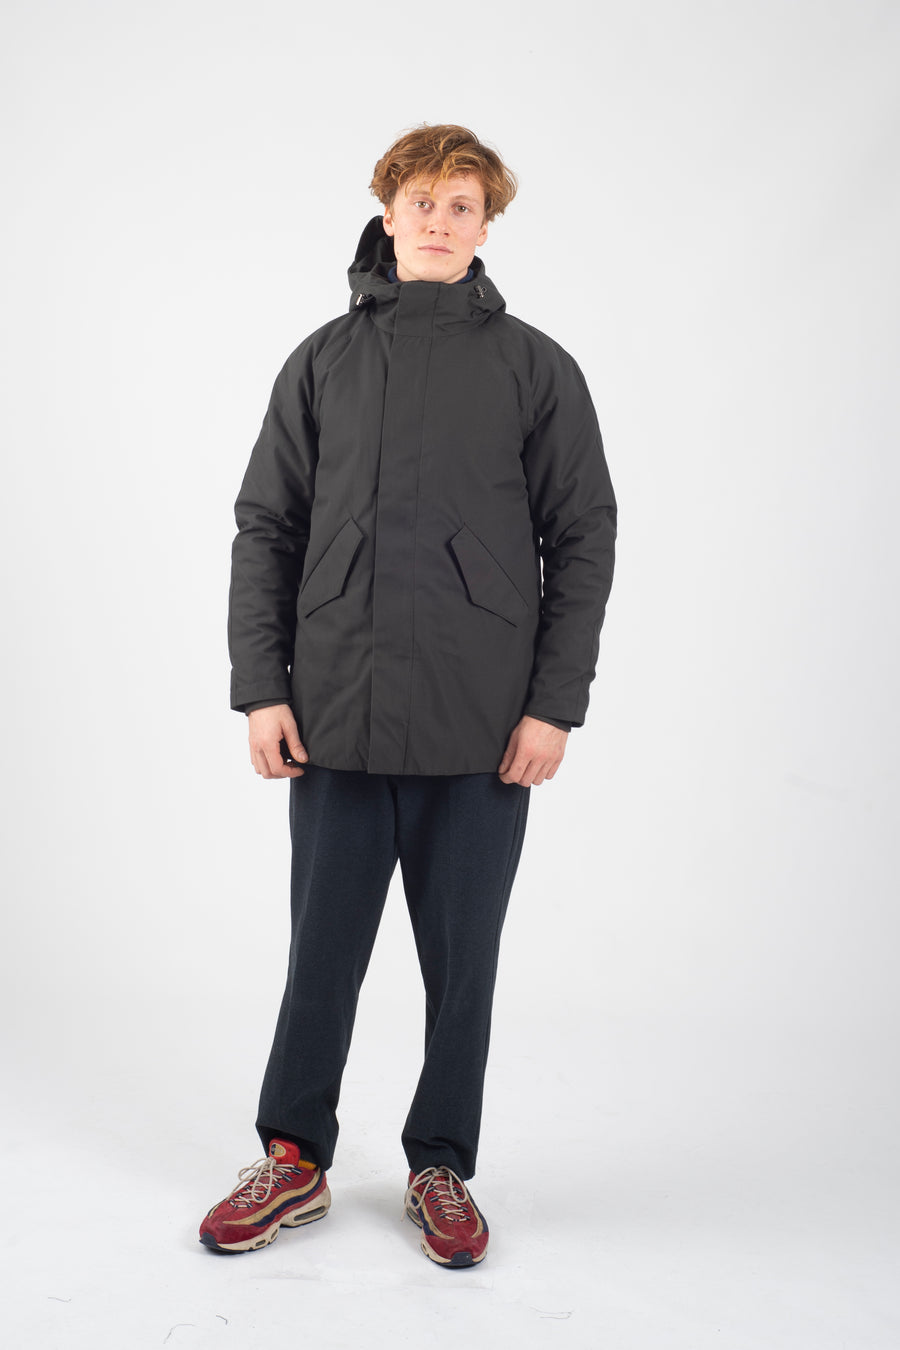 Marinero Parka Spoiler Army - Welter Shelter - Waterproof, Windproof, breathable Packable